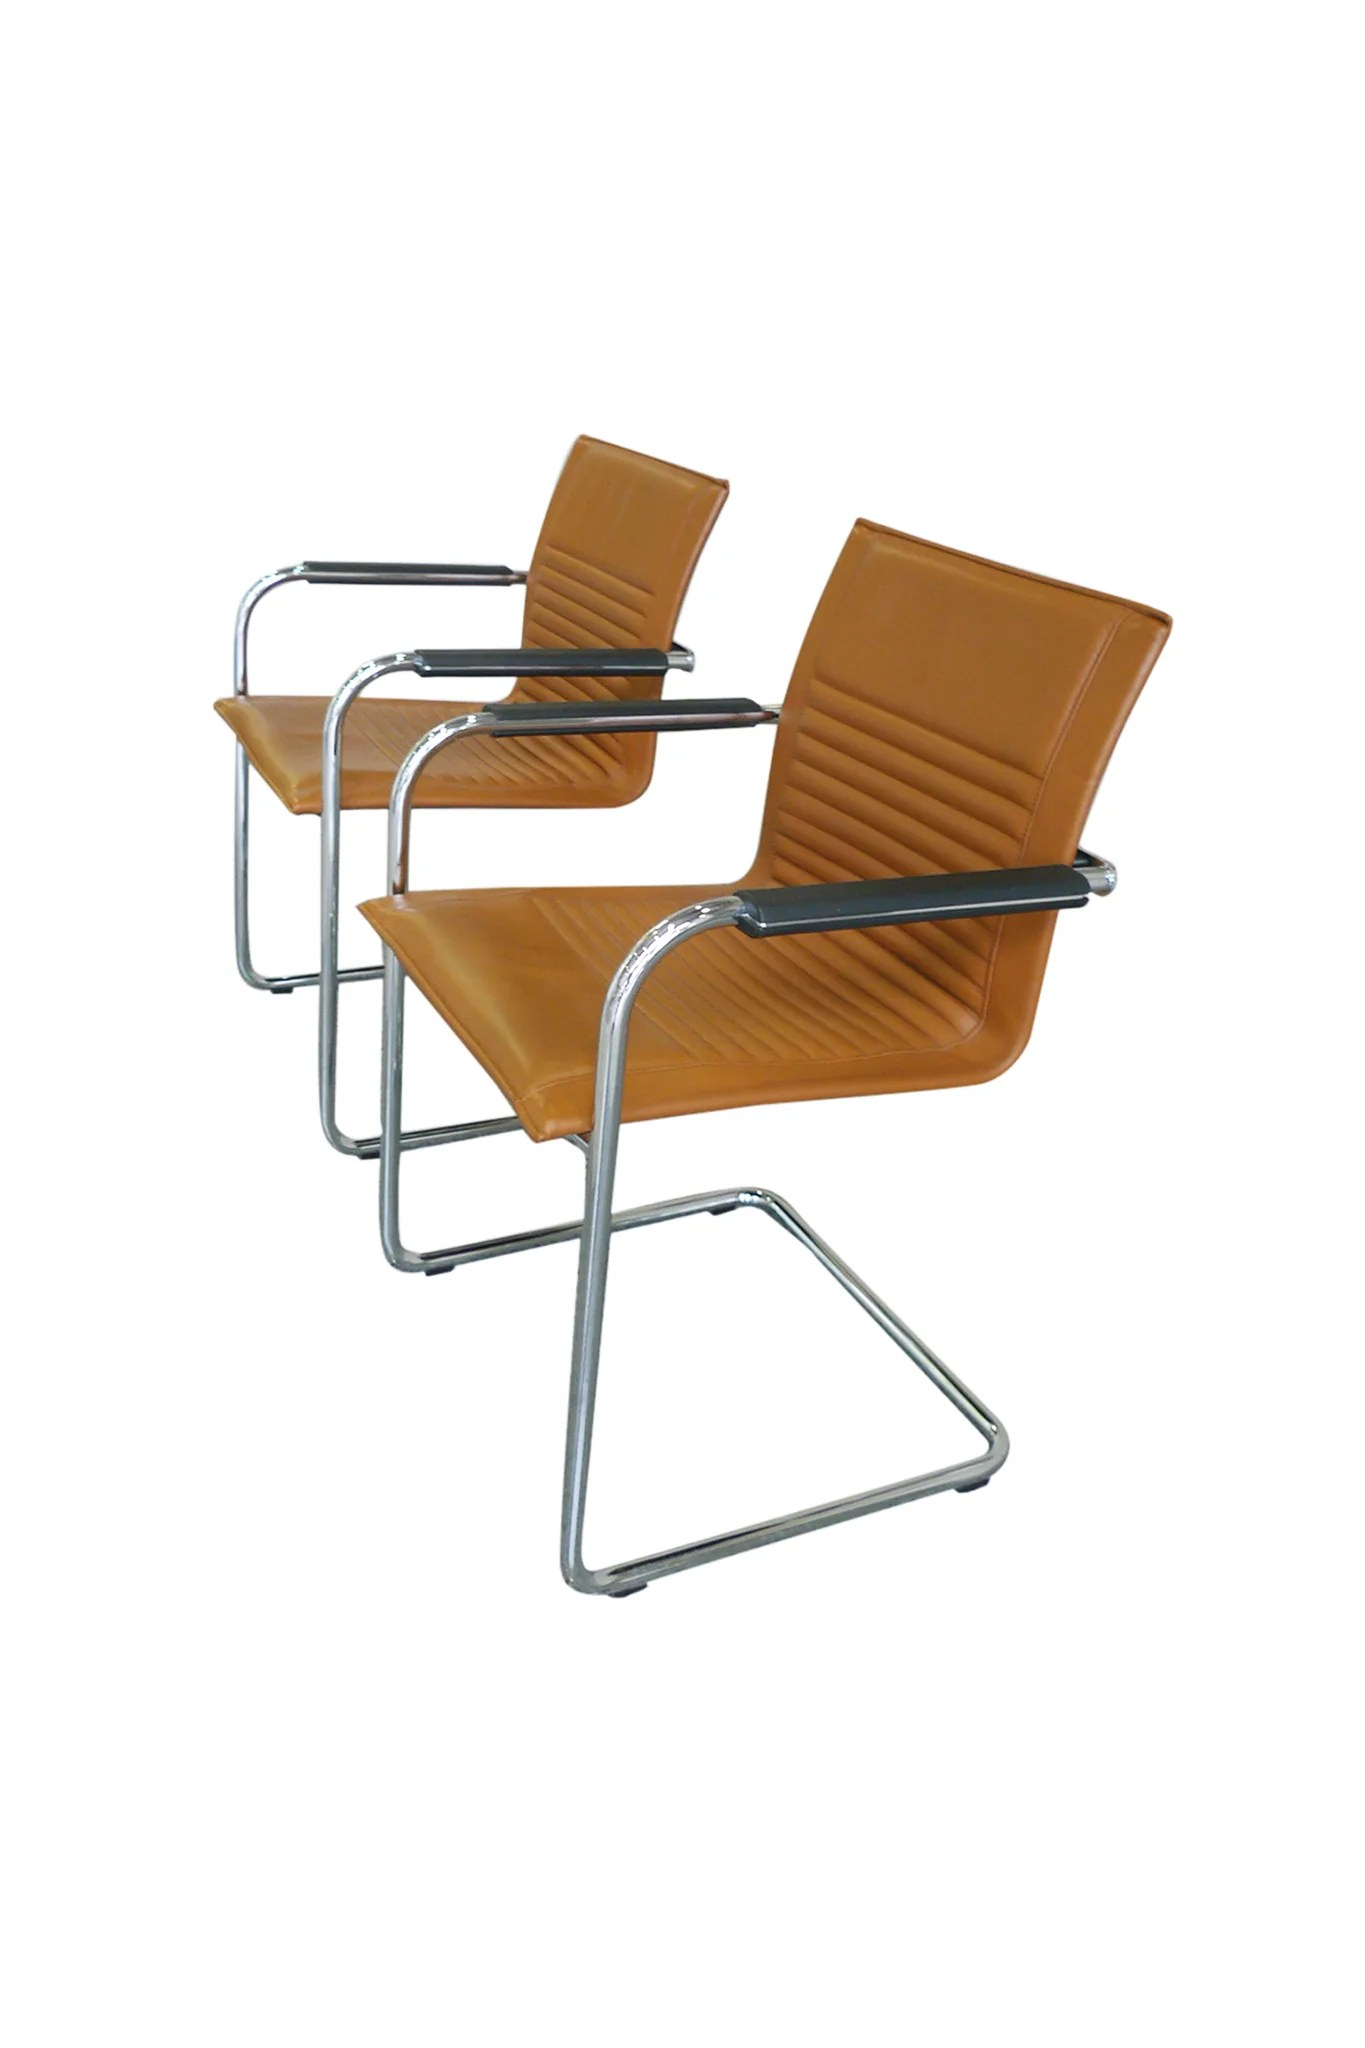 Arm Chairs Pair Of Modern Tan Haworth Exchange Arm Chairs In The Style Of Mart Stam